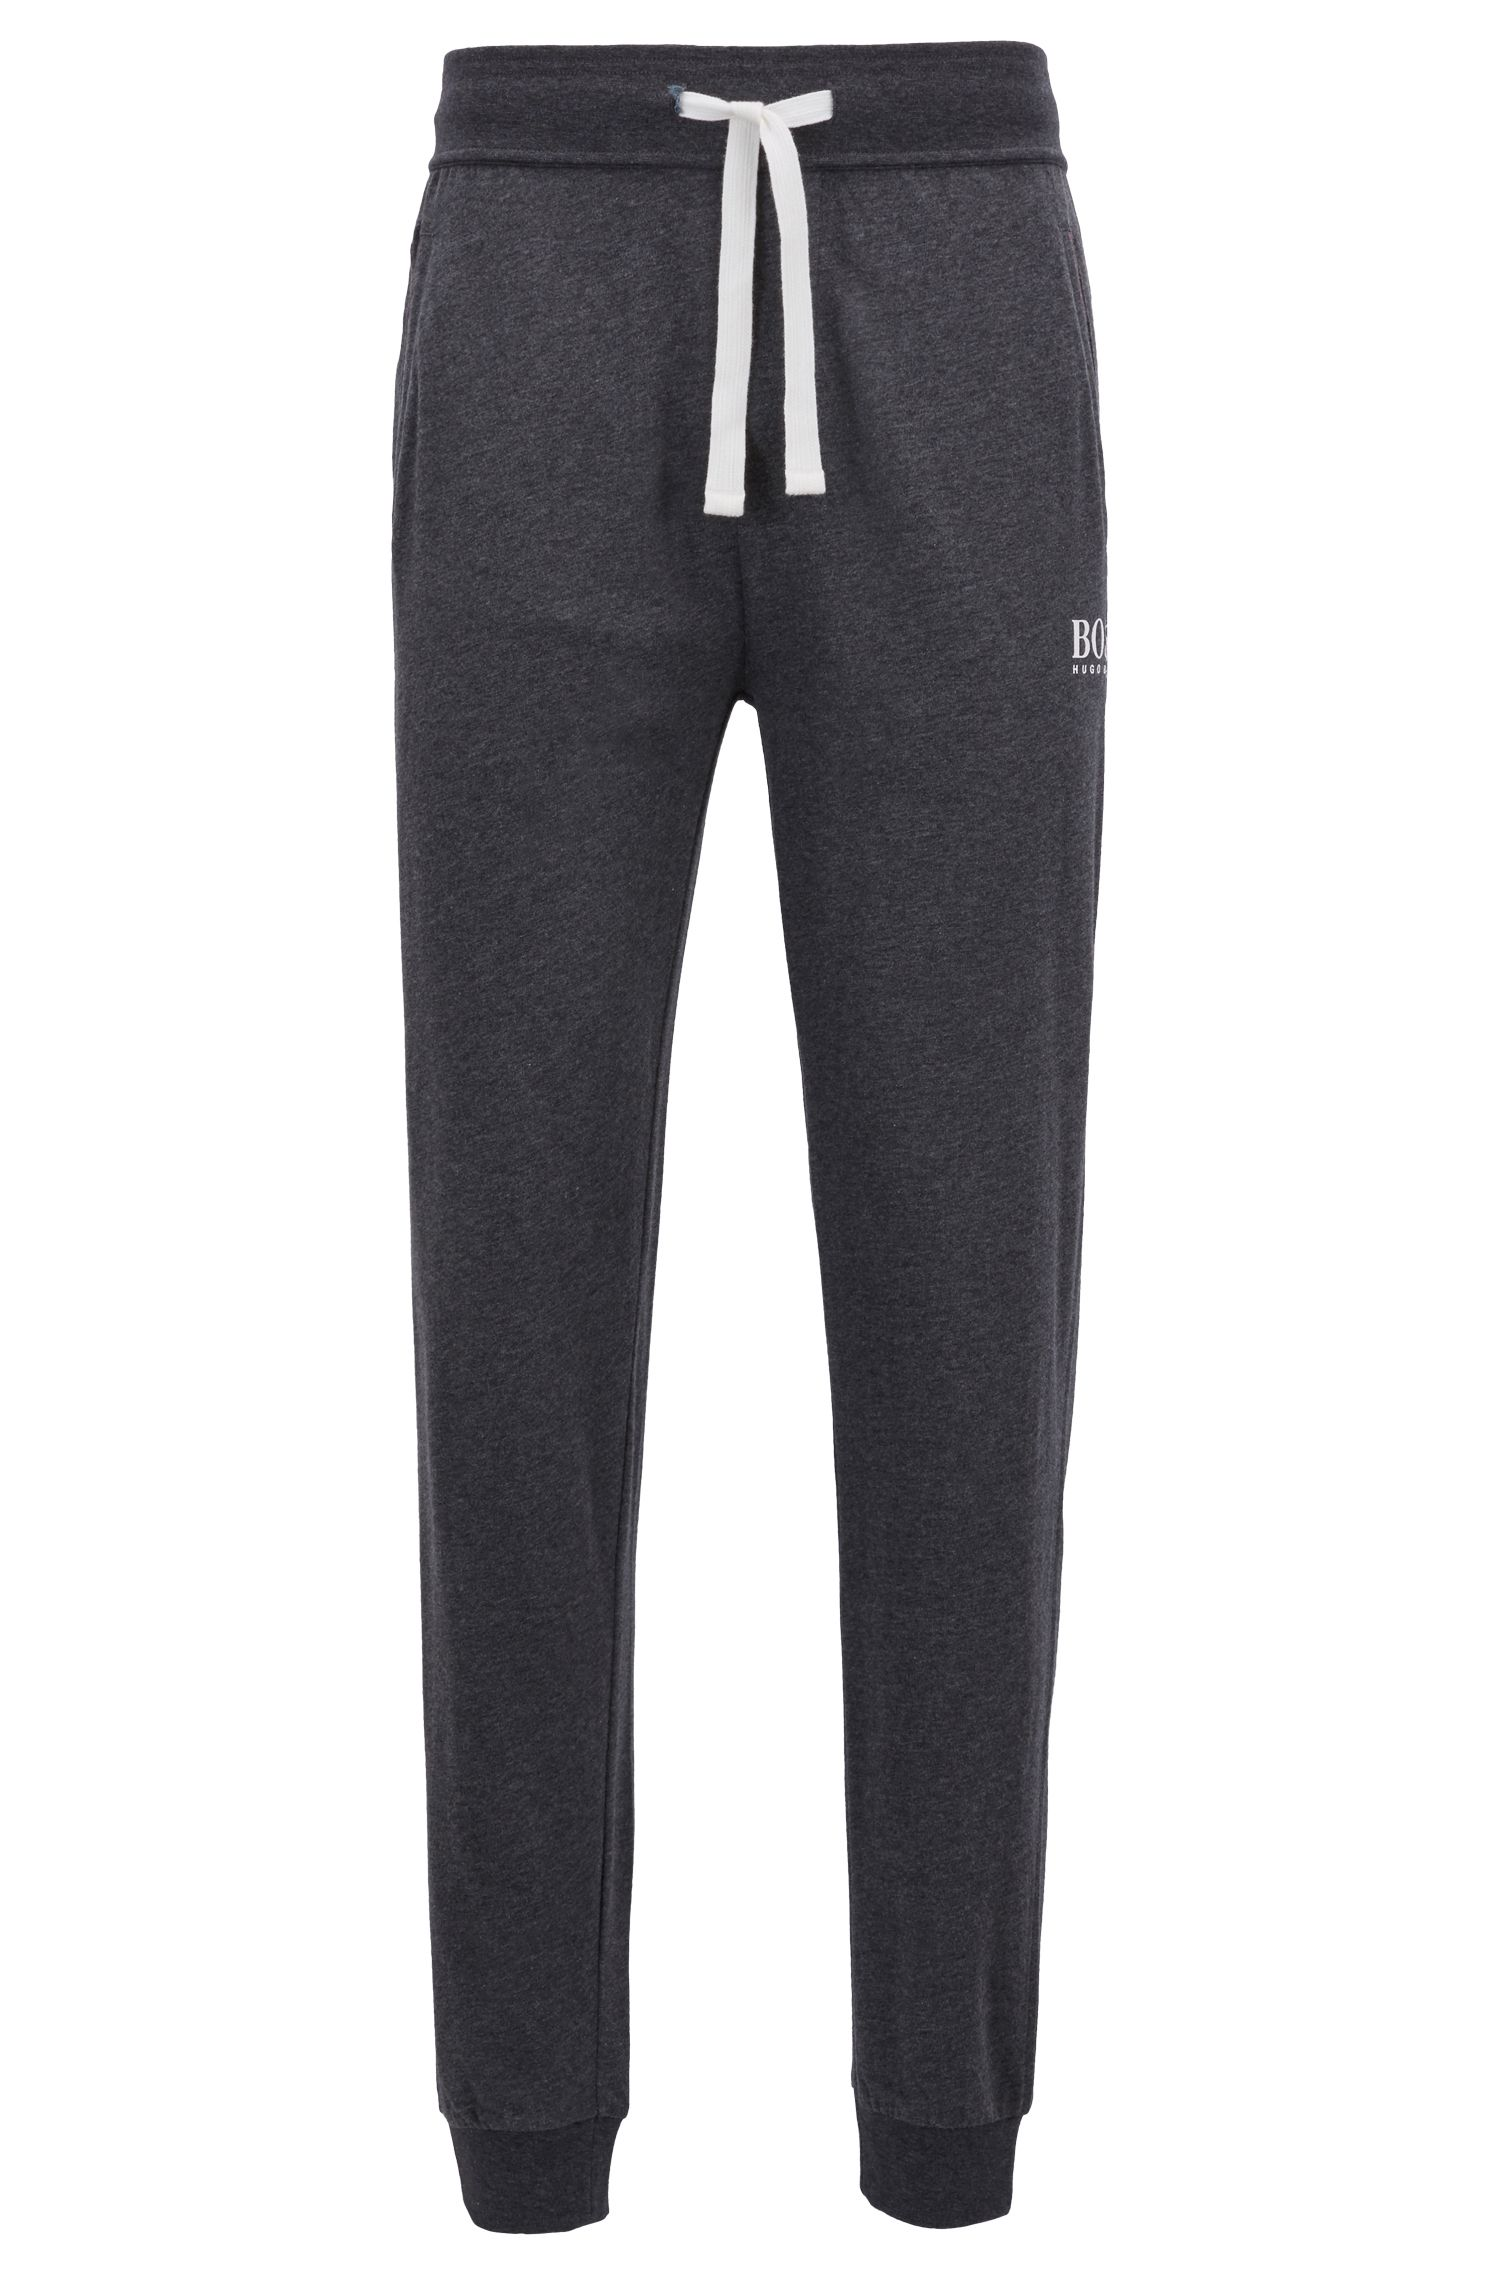 Cuffed loungewear pants in heavyweight one-way-jersey cotton, Grey